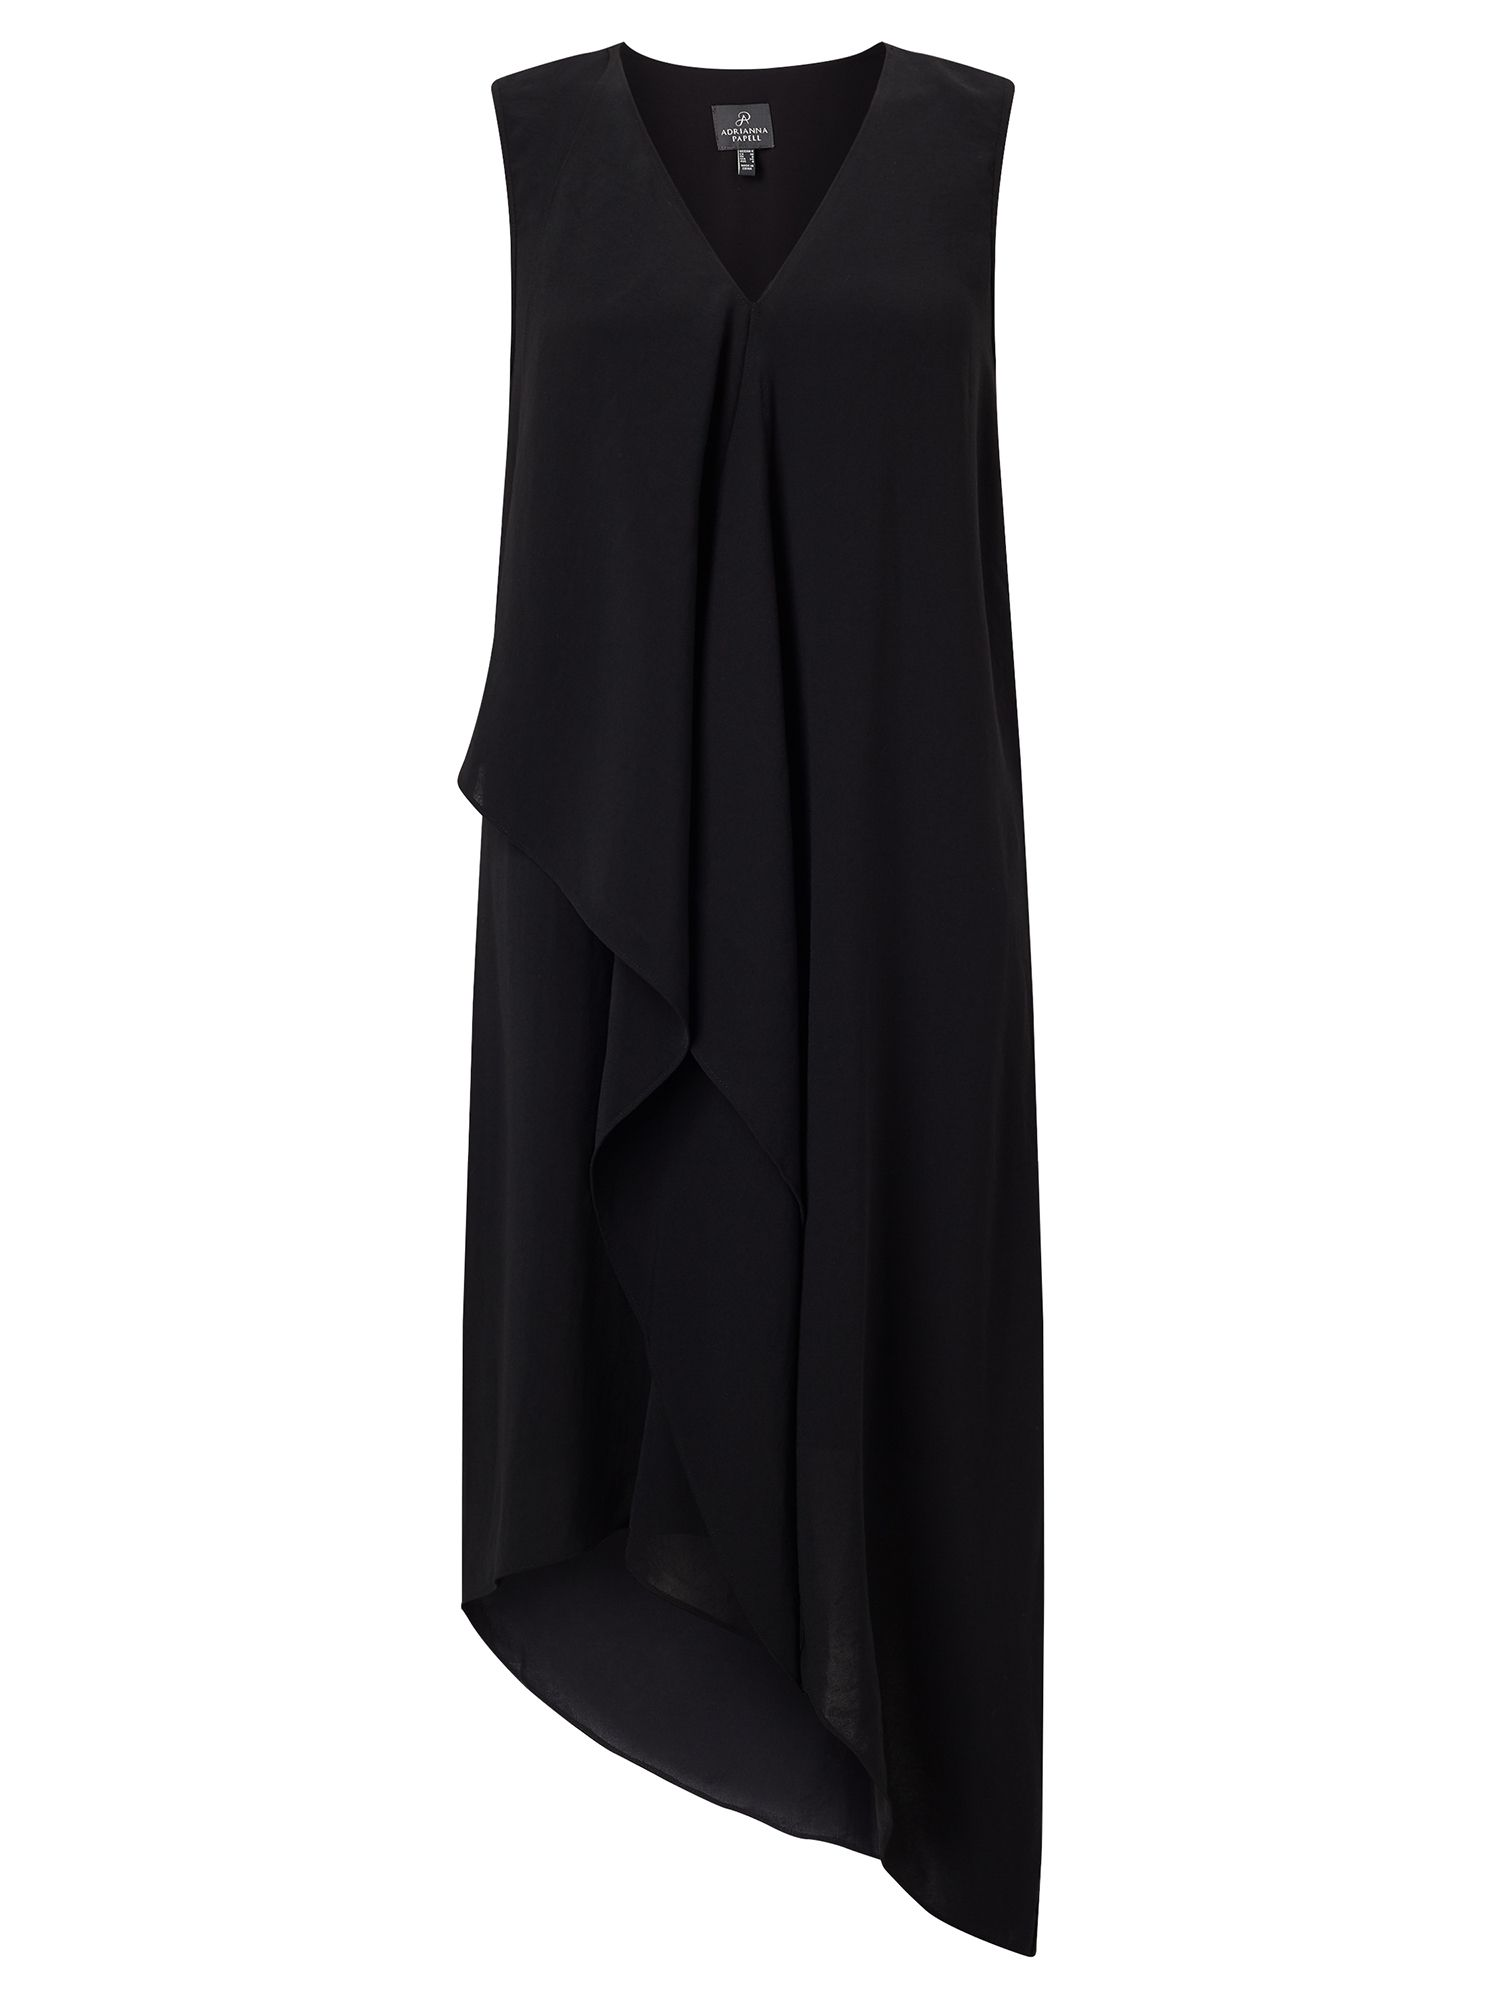 Adrianna Papell Asymmetric drape dress Black